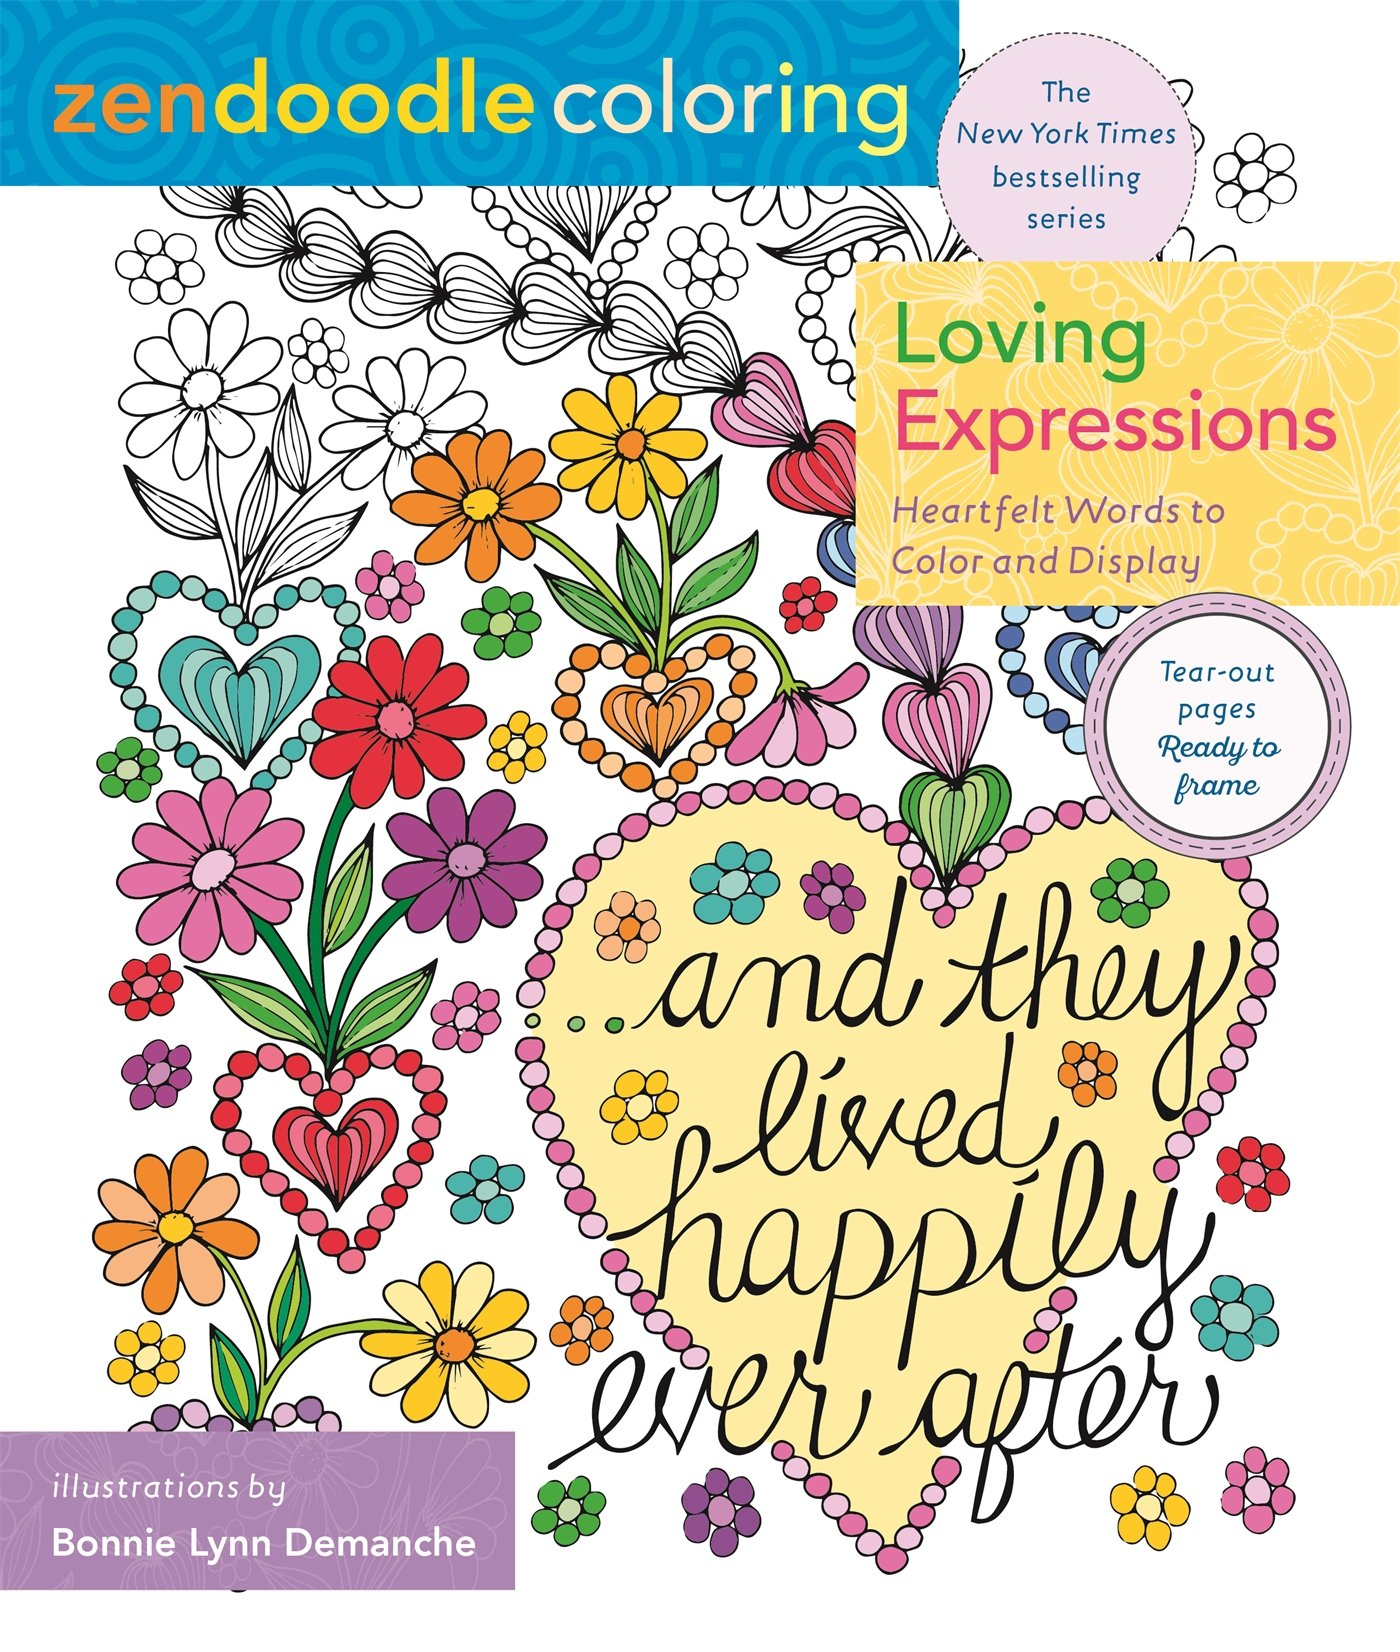 Zendoodle Coloring: Loving Expressions: Heartfelt Words to Color and Display